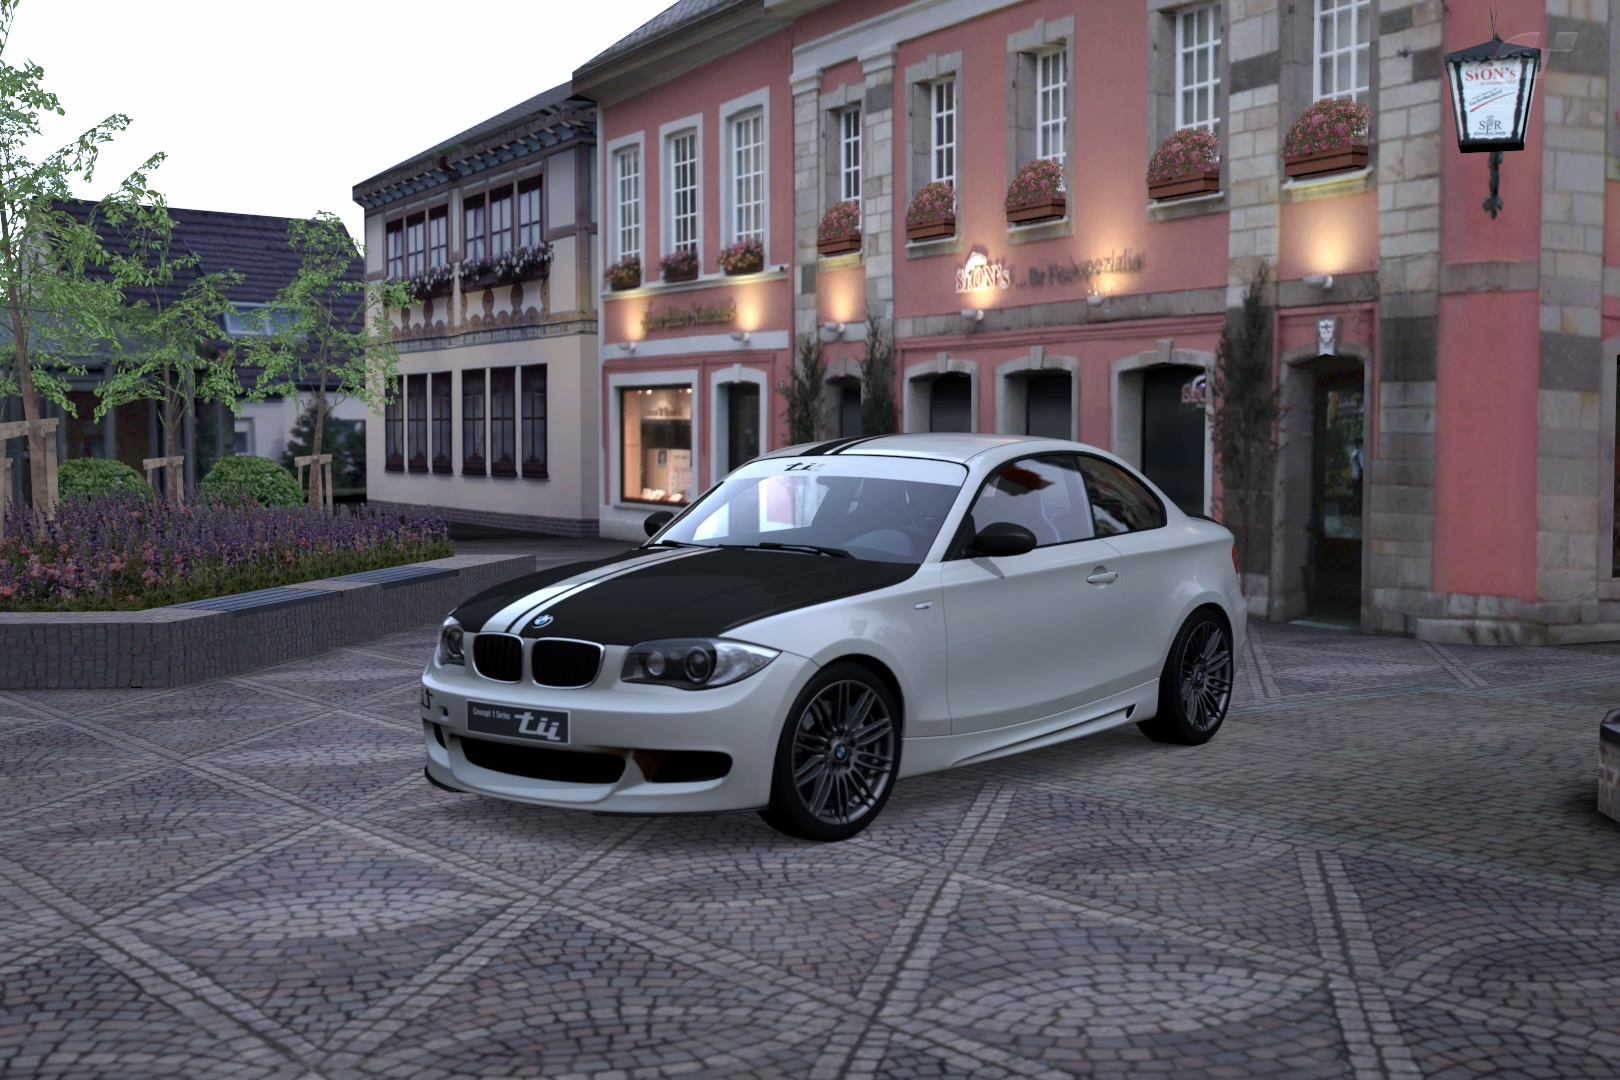 BMW Concept 1 Series TII ´07 | Gran Turismo Wiki | FANDOM powered by ...